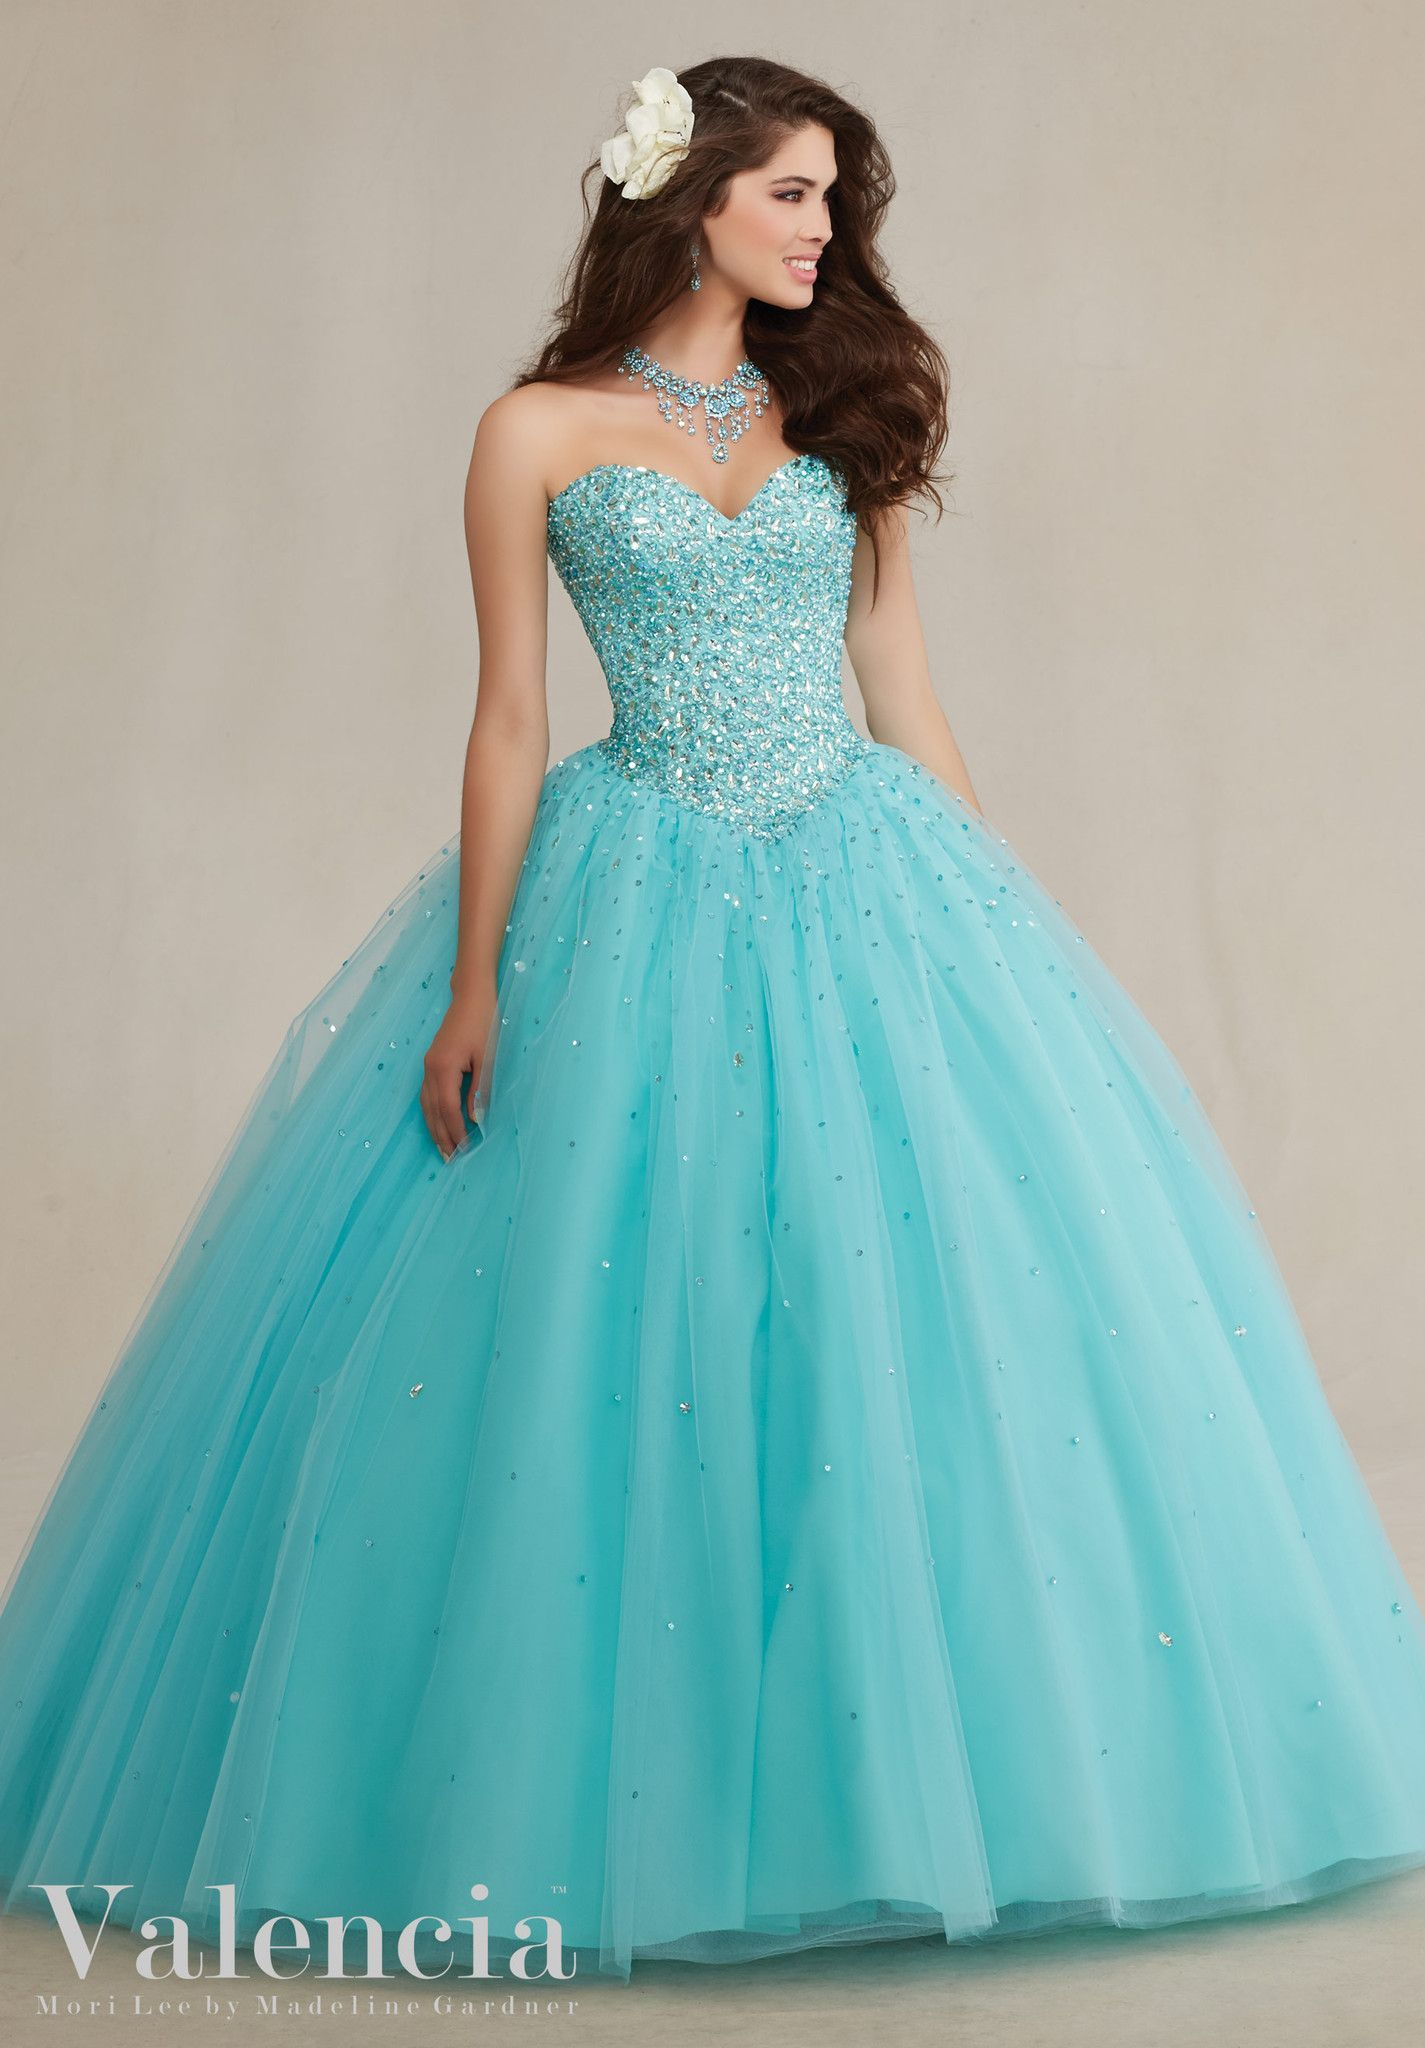 Mori Lee Valencia Quinceanera Dress 89087 | Vestiditos, Quinceañera ...